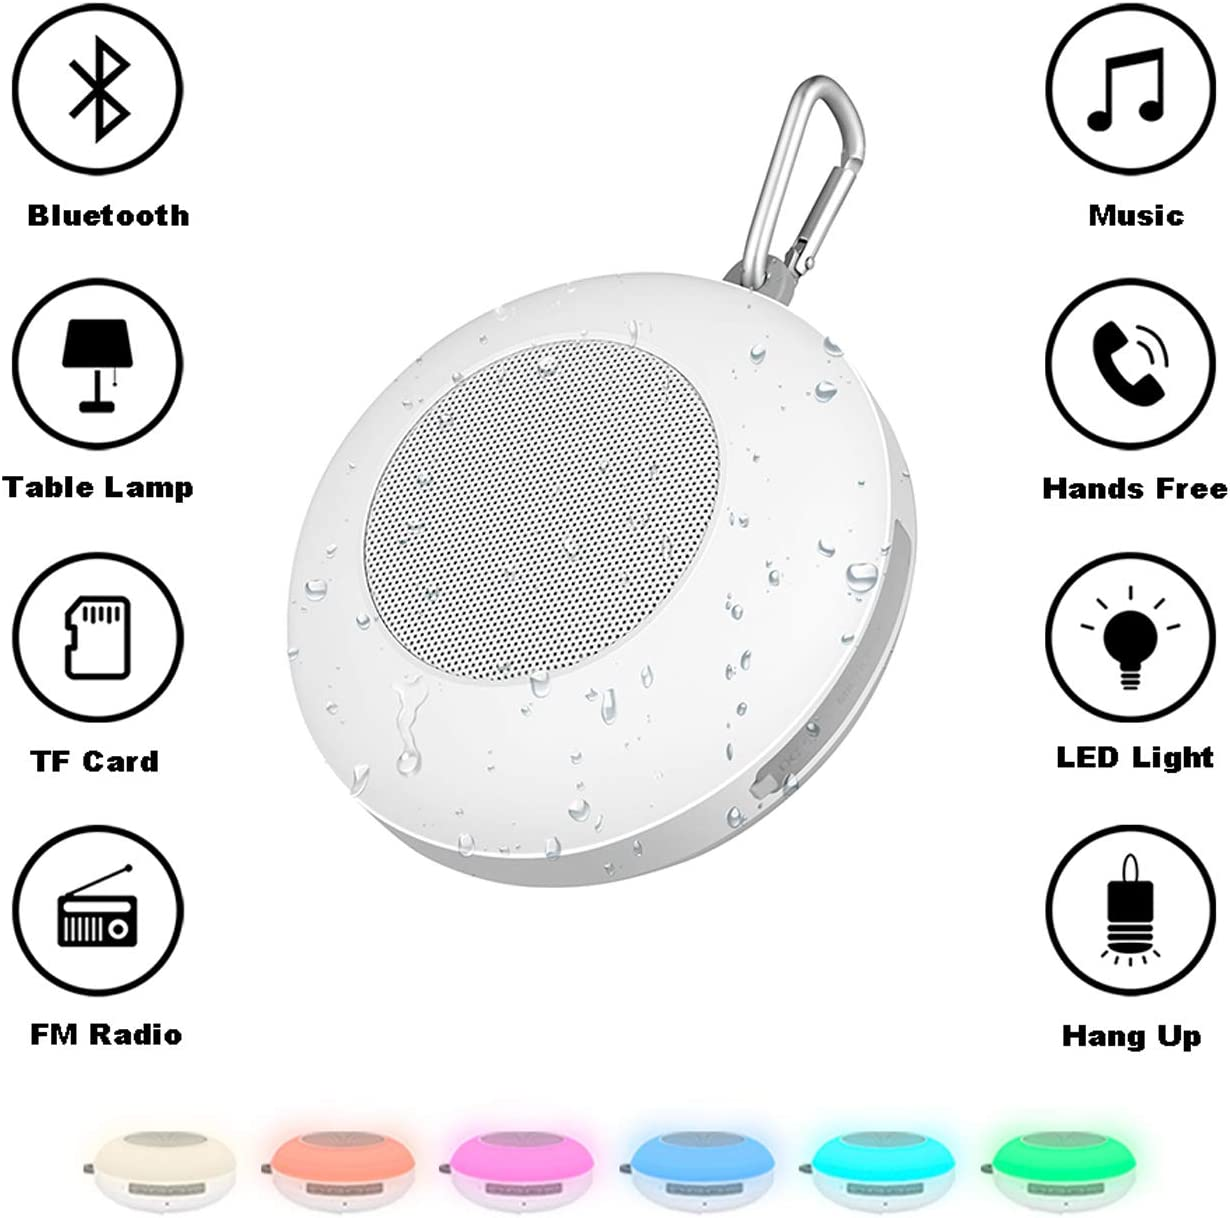 Amazon Com Portable Floating Waterproof Multi Light Touch Sensor Wireless Speaker Ipx5 Waterproof Handsfree Call Tf Card Support Dimmable Warm White Light 7 Color 3 Brightnesses Changing Home Audio Theater